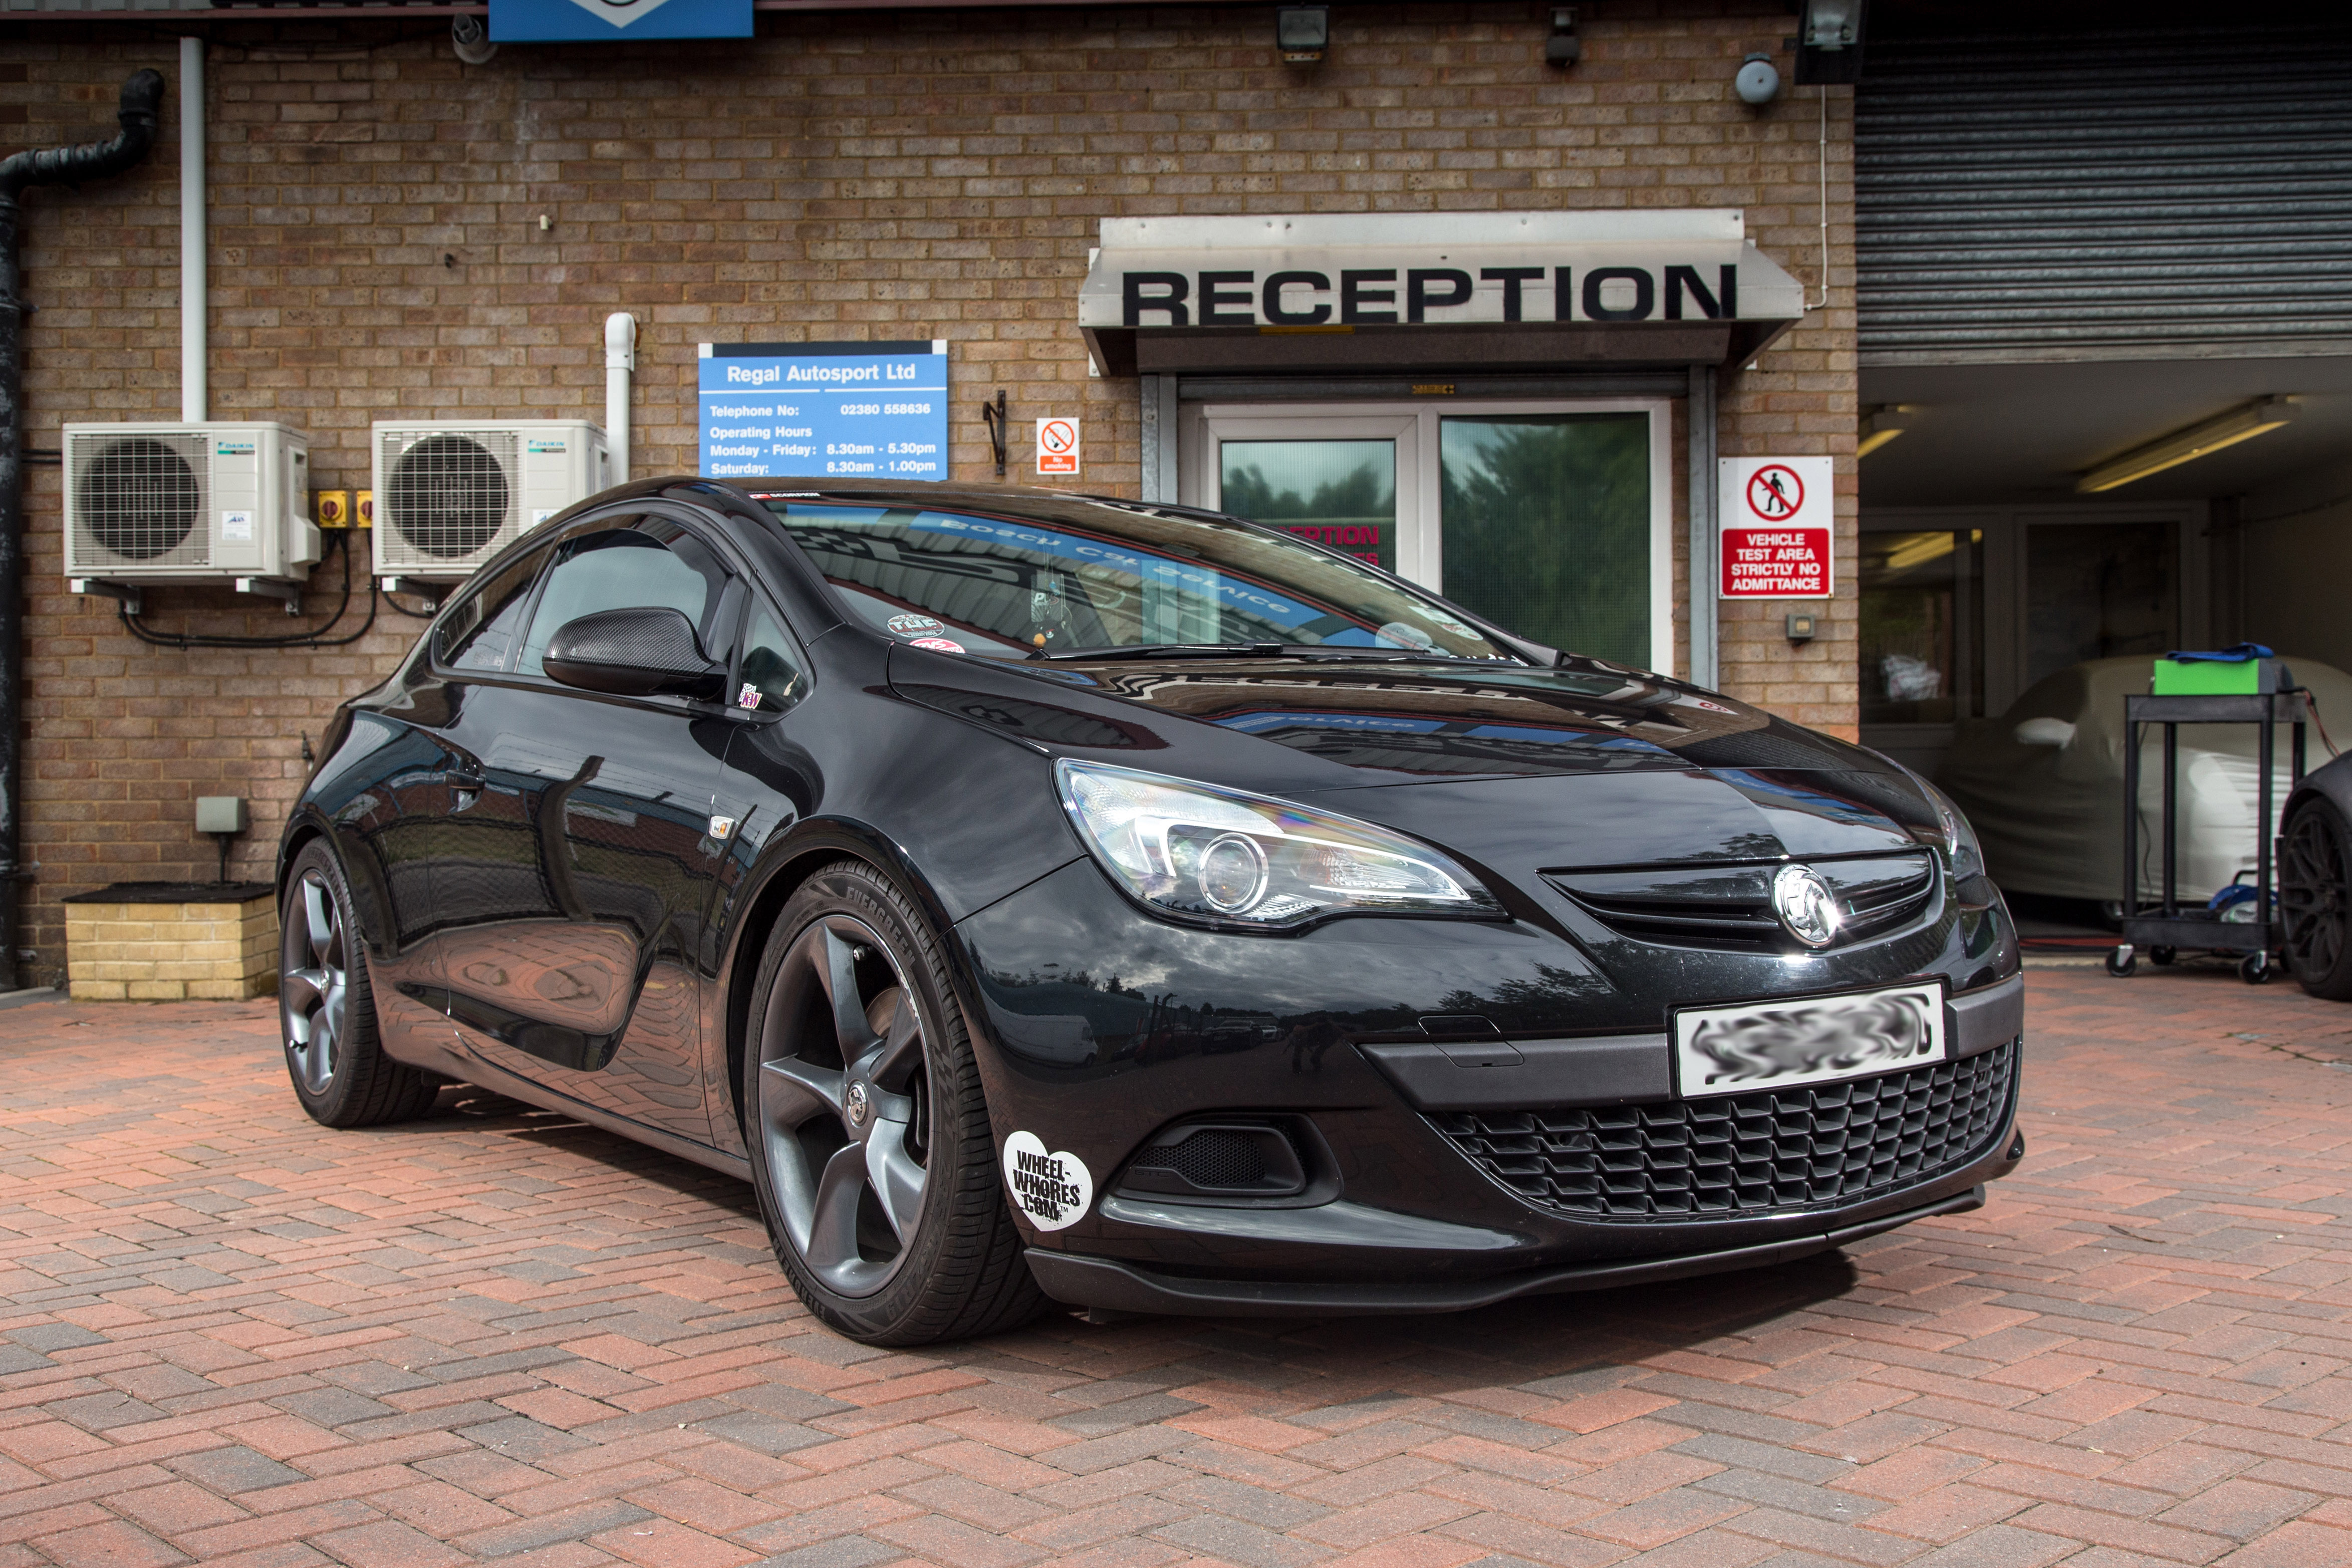 Rss Stage 3 Now Available For Vauxhall Opel 1 4 Turbo Models Regal Autosport